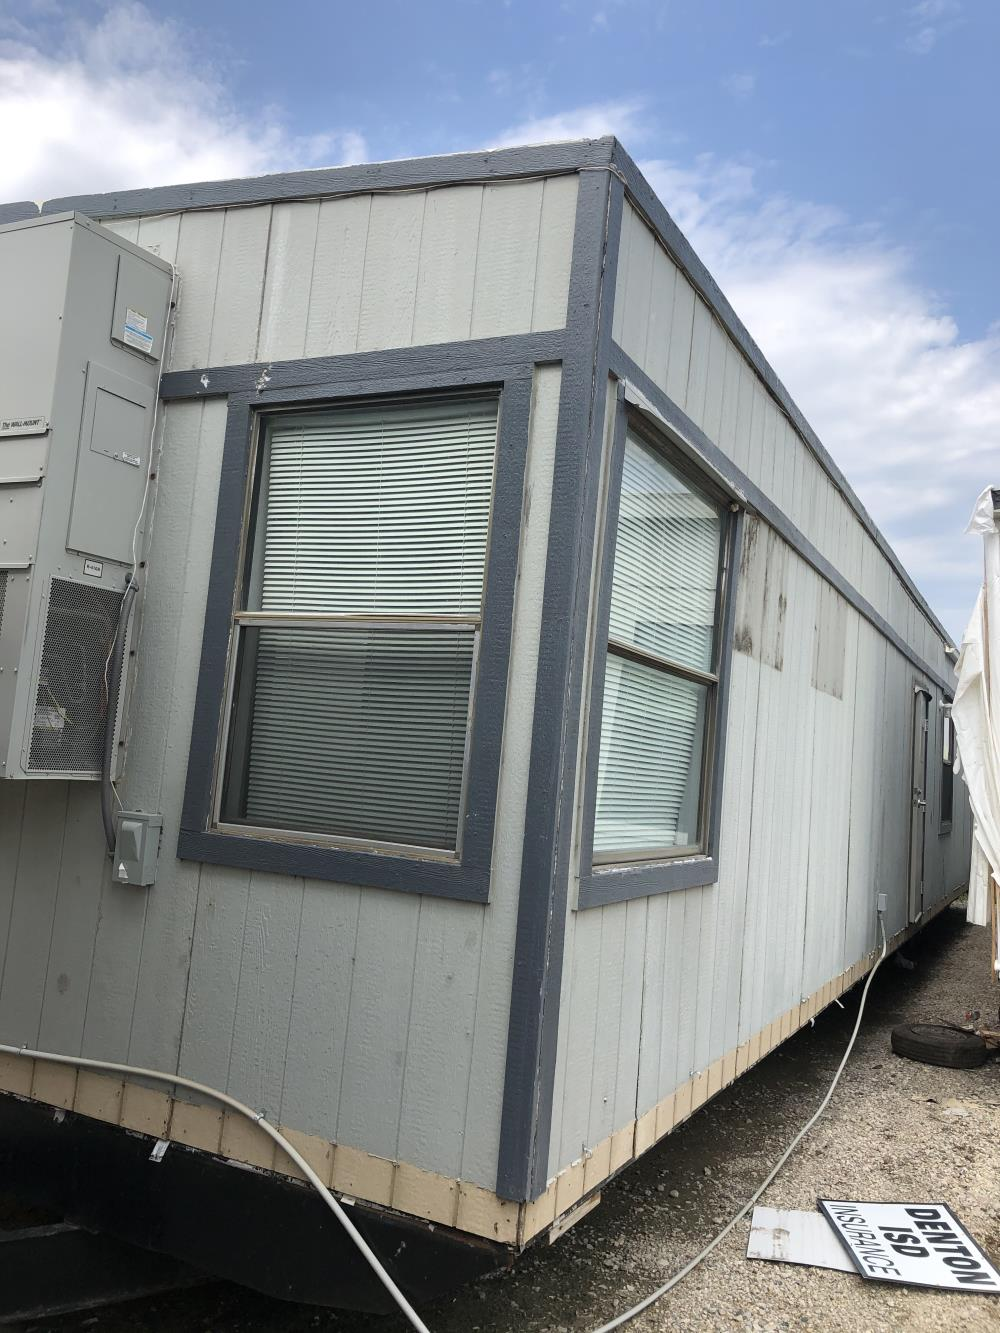 64'x28' Section Modular for sale in Dallas North - CPX-108255 -2